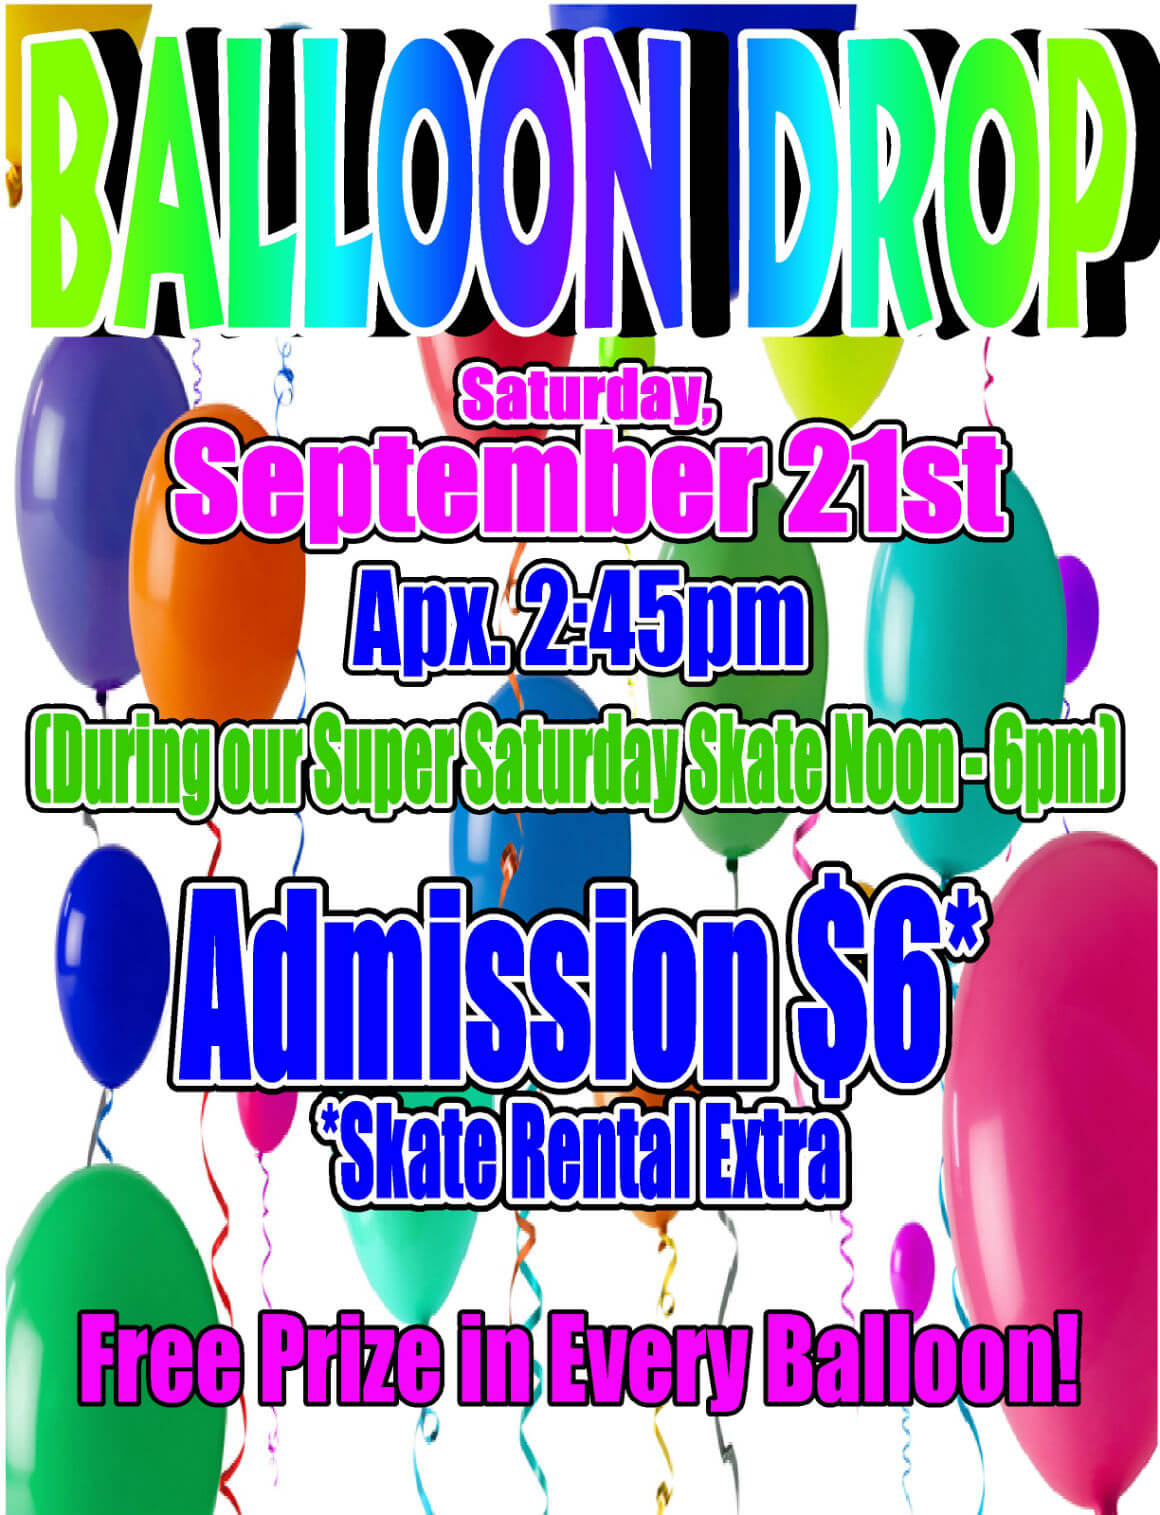 Balloon Drop Sept 2013